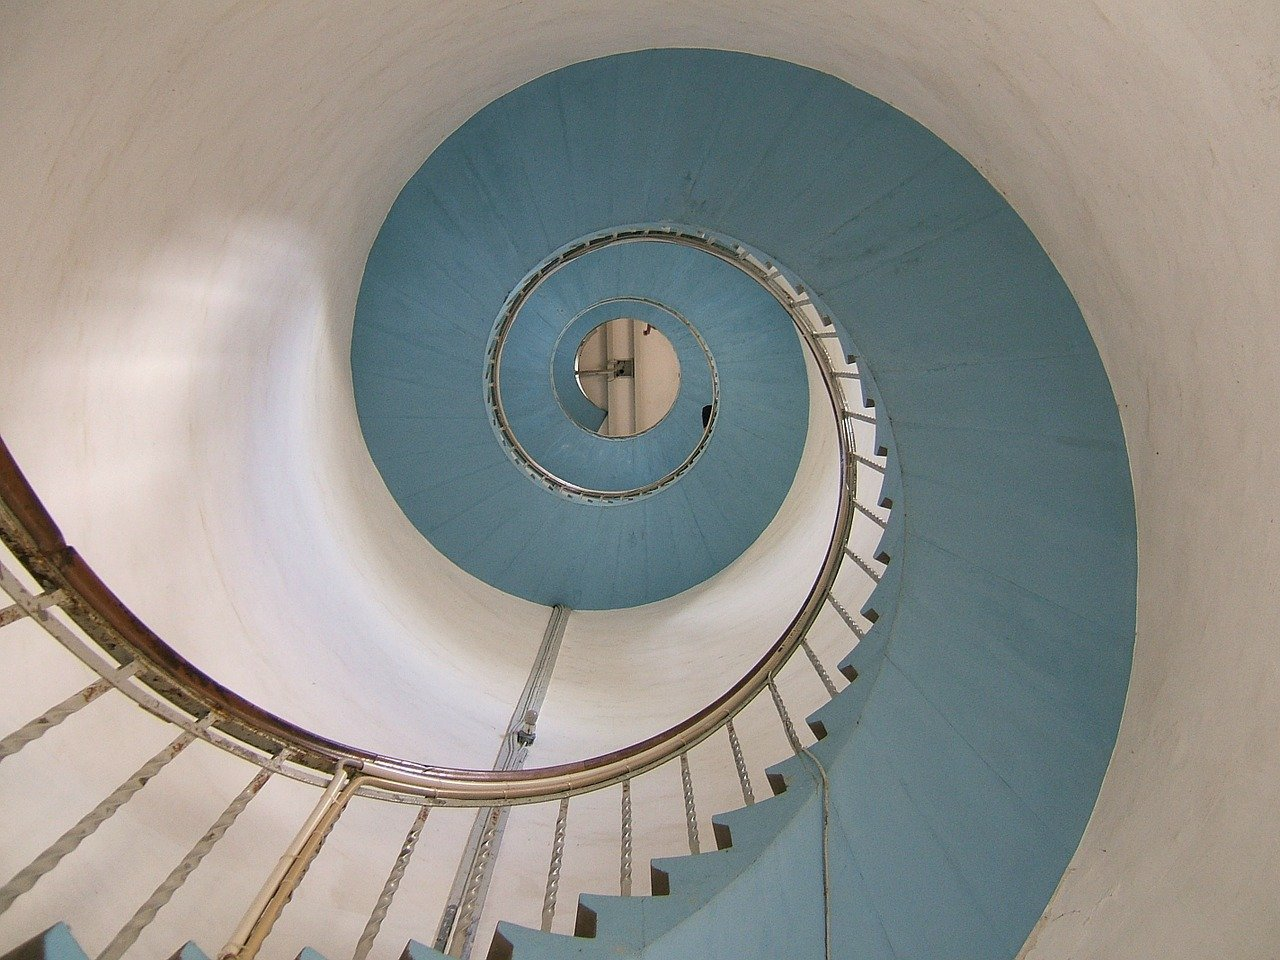 lighthouse, stairs, snail